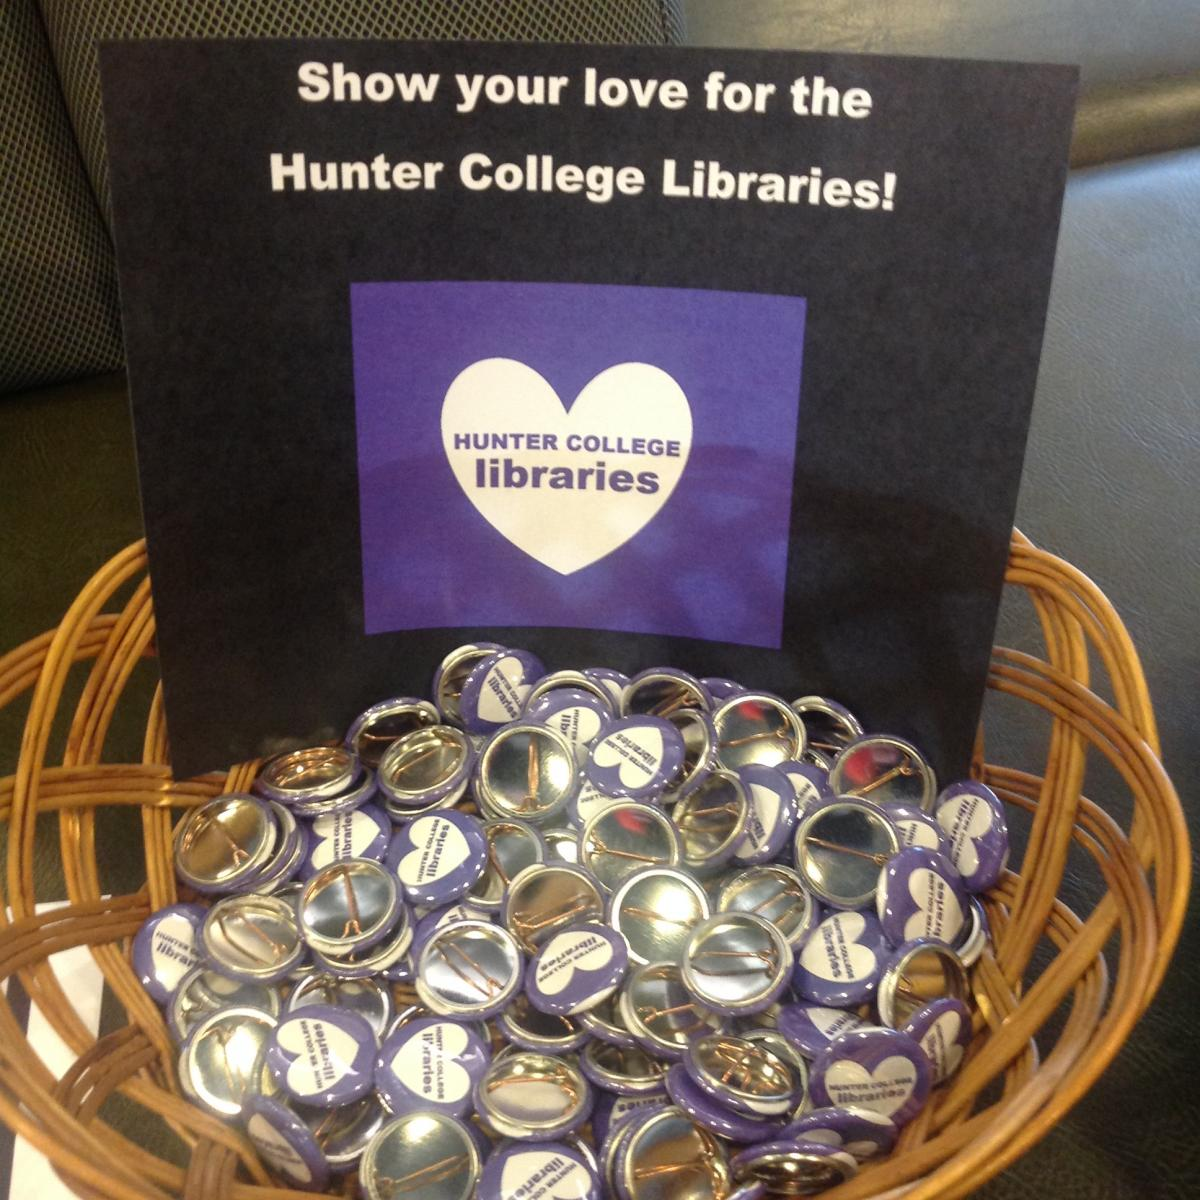 Basket of Hunter College Libraries buttons